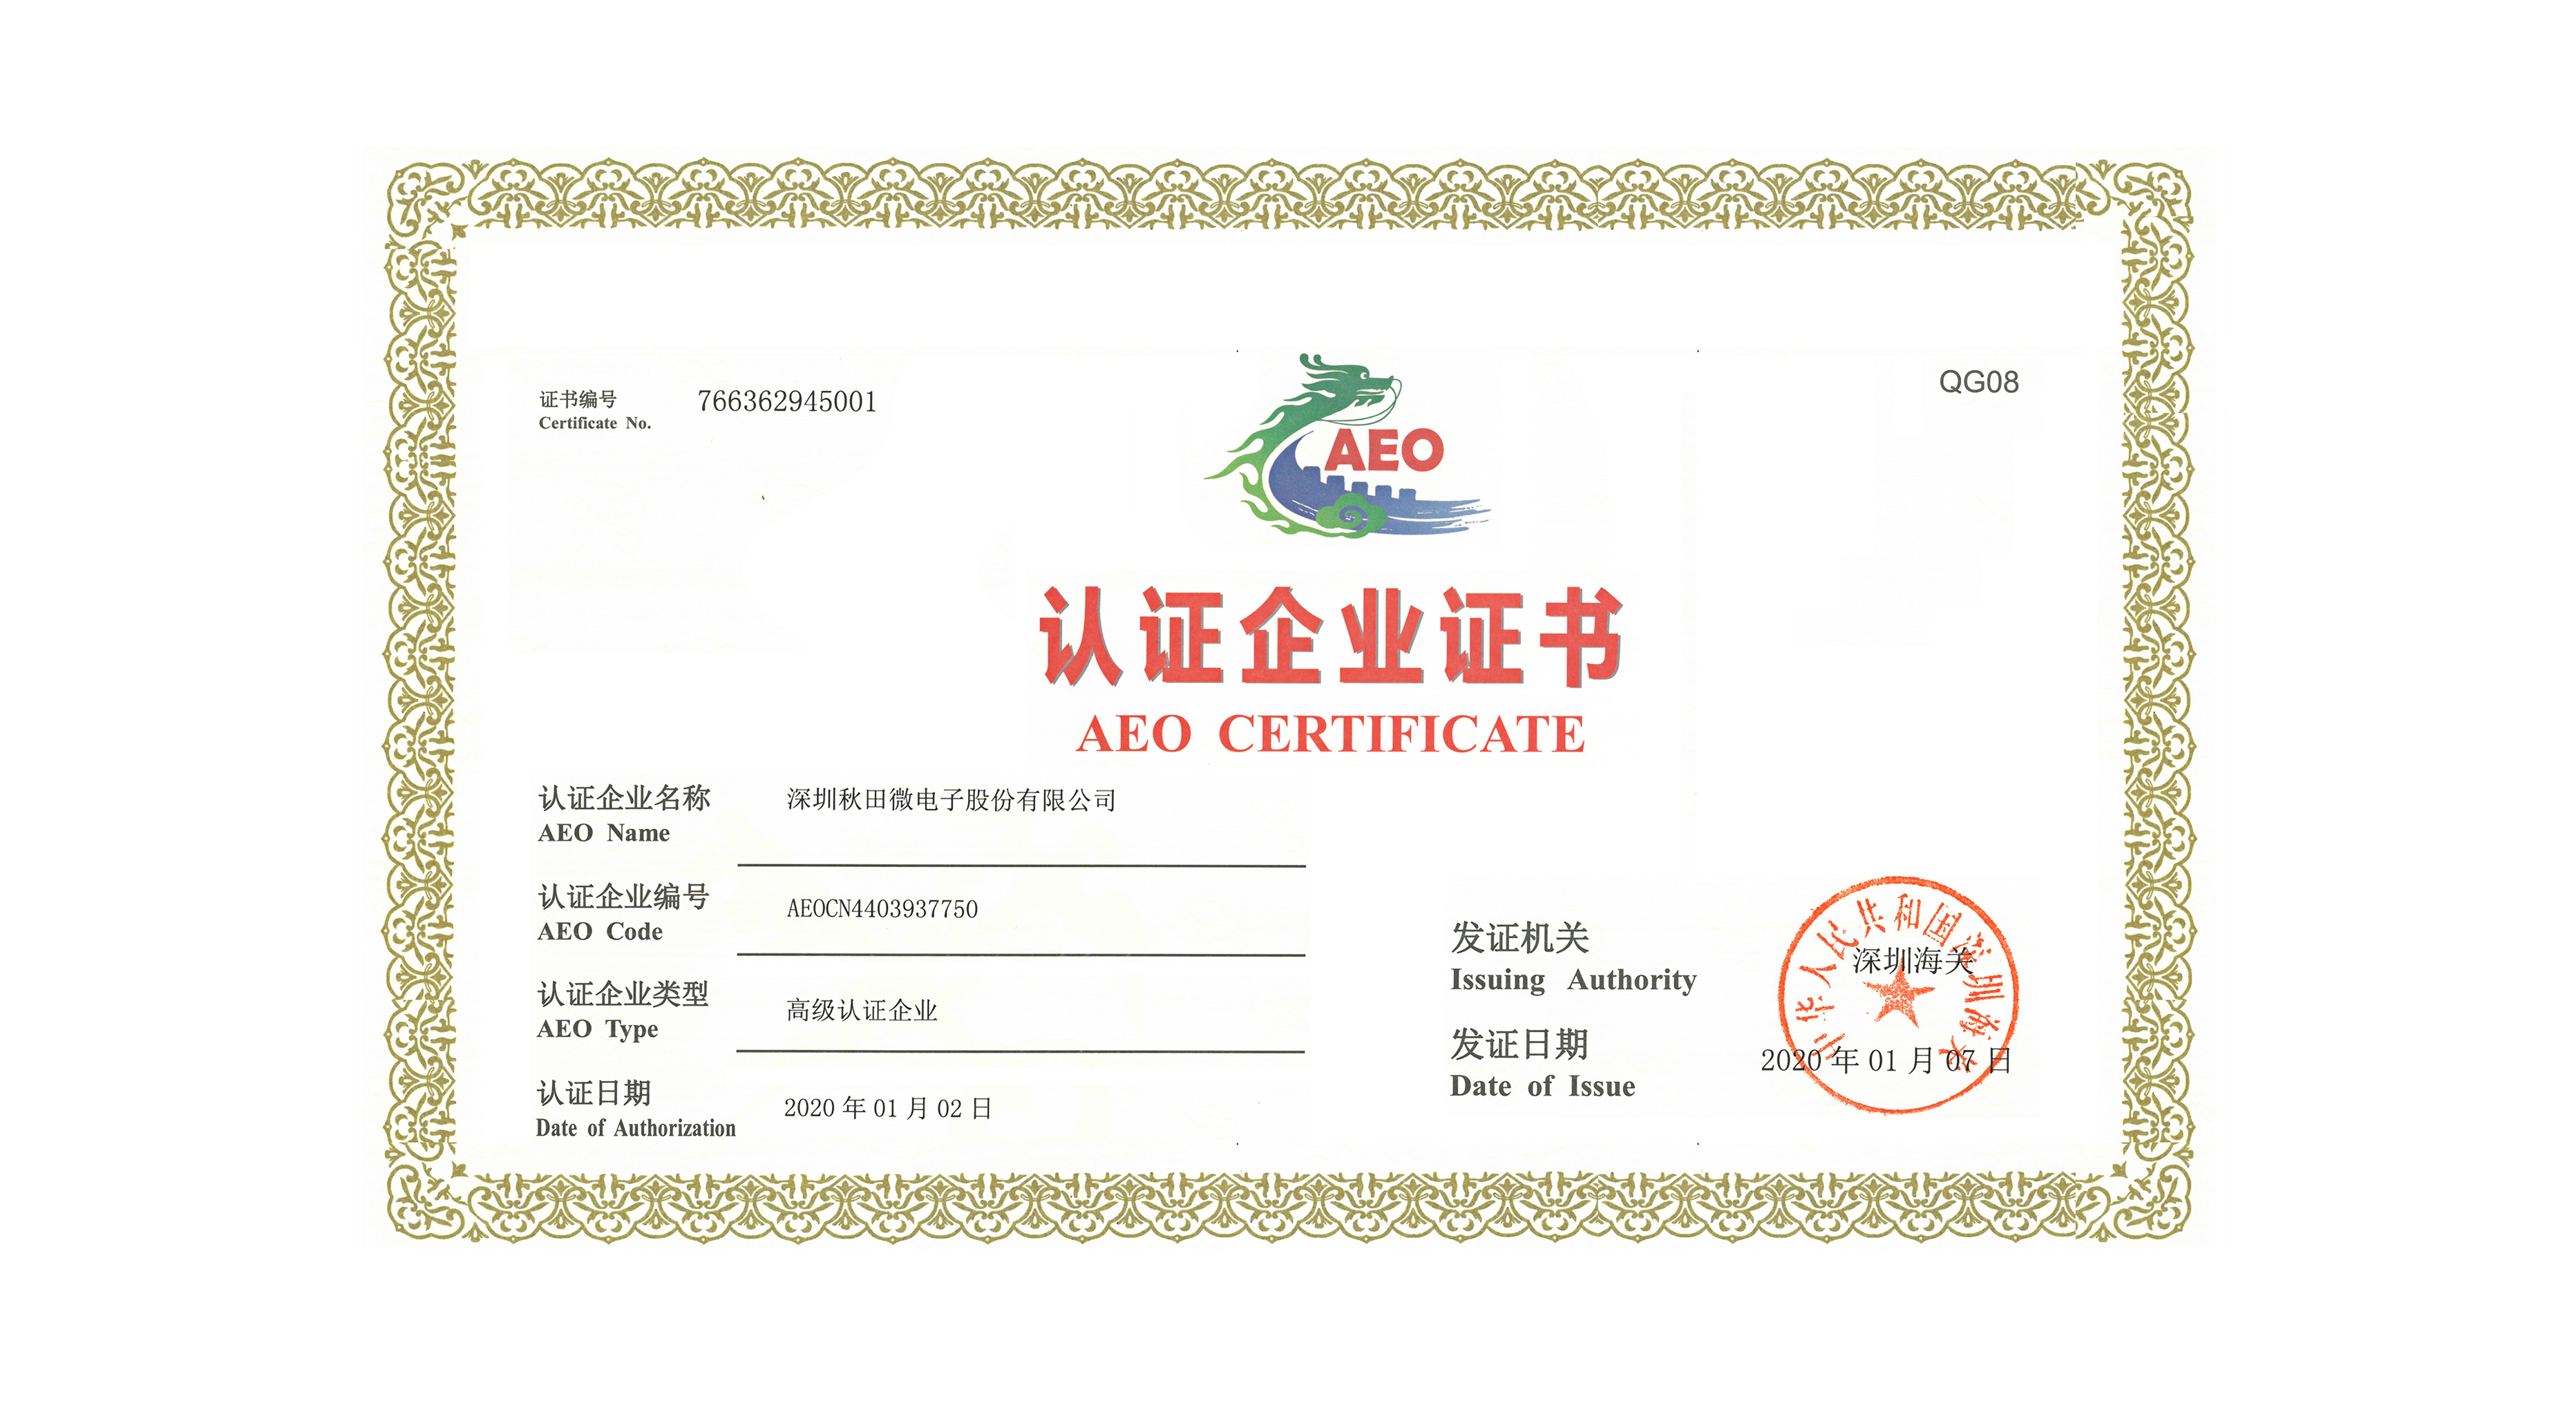 AVD successfully passed the AEO certification